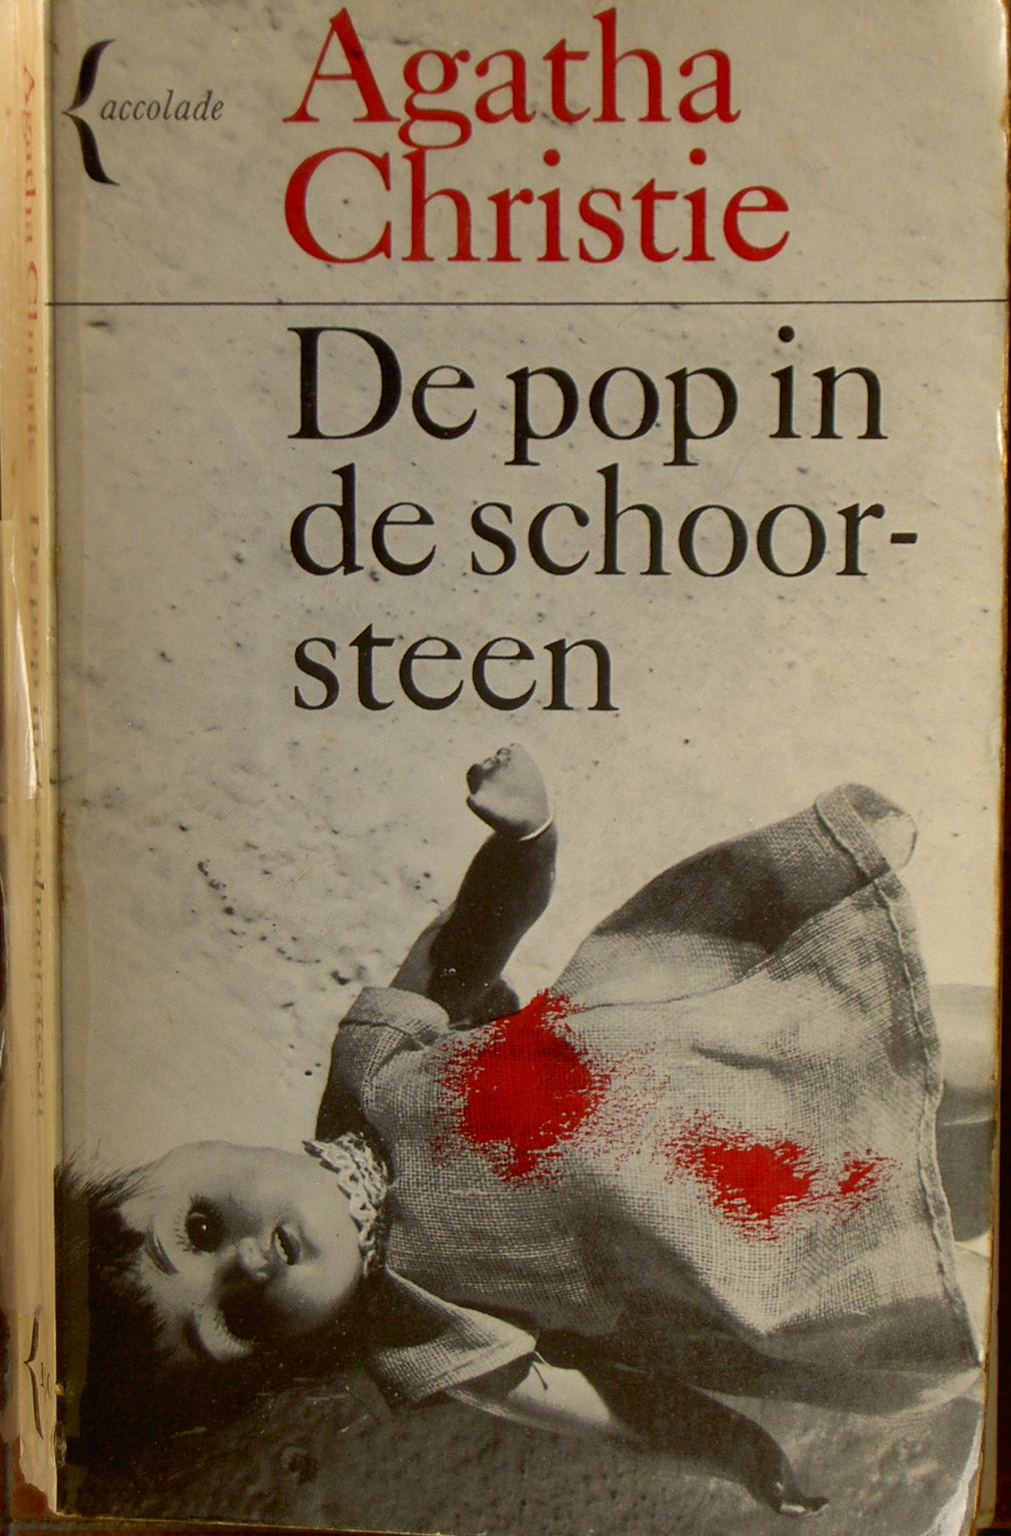 De pop in de schoorsteen